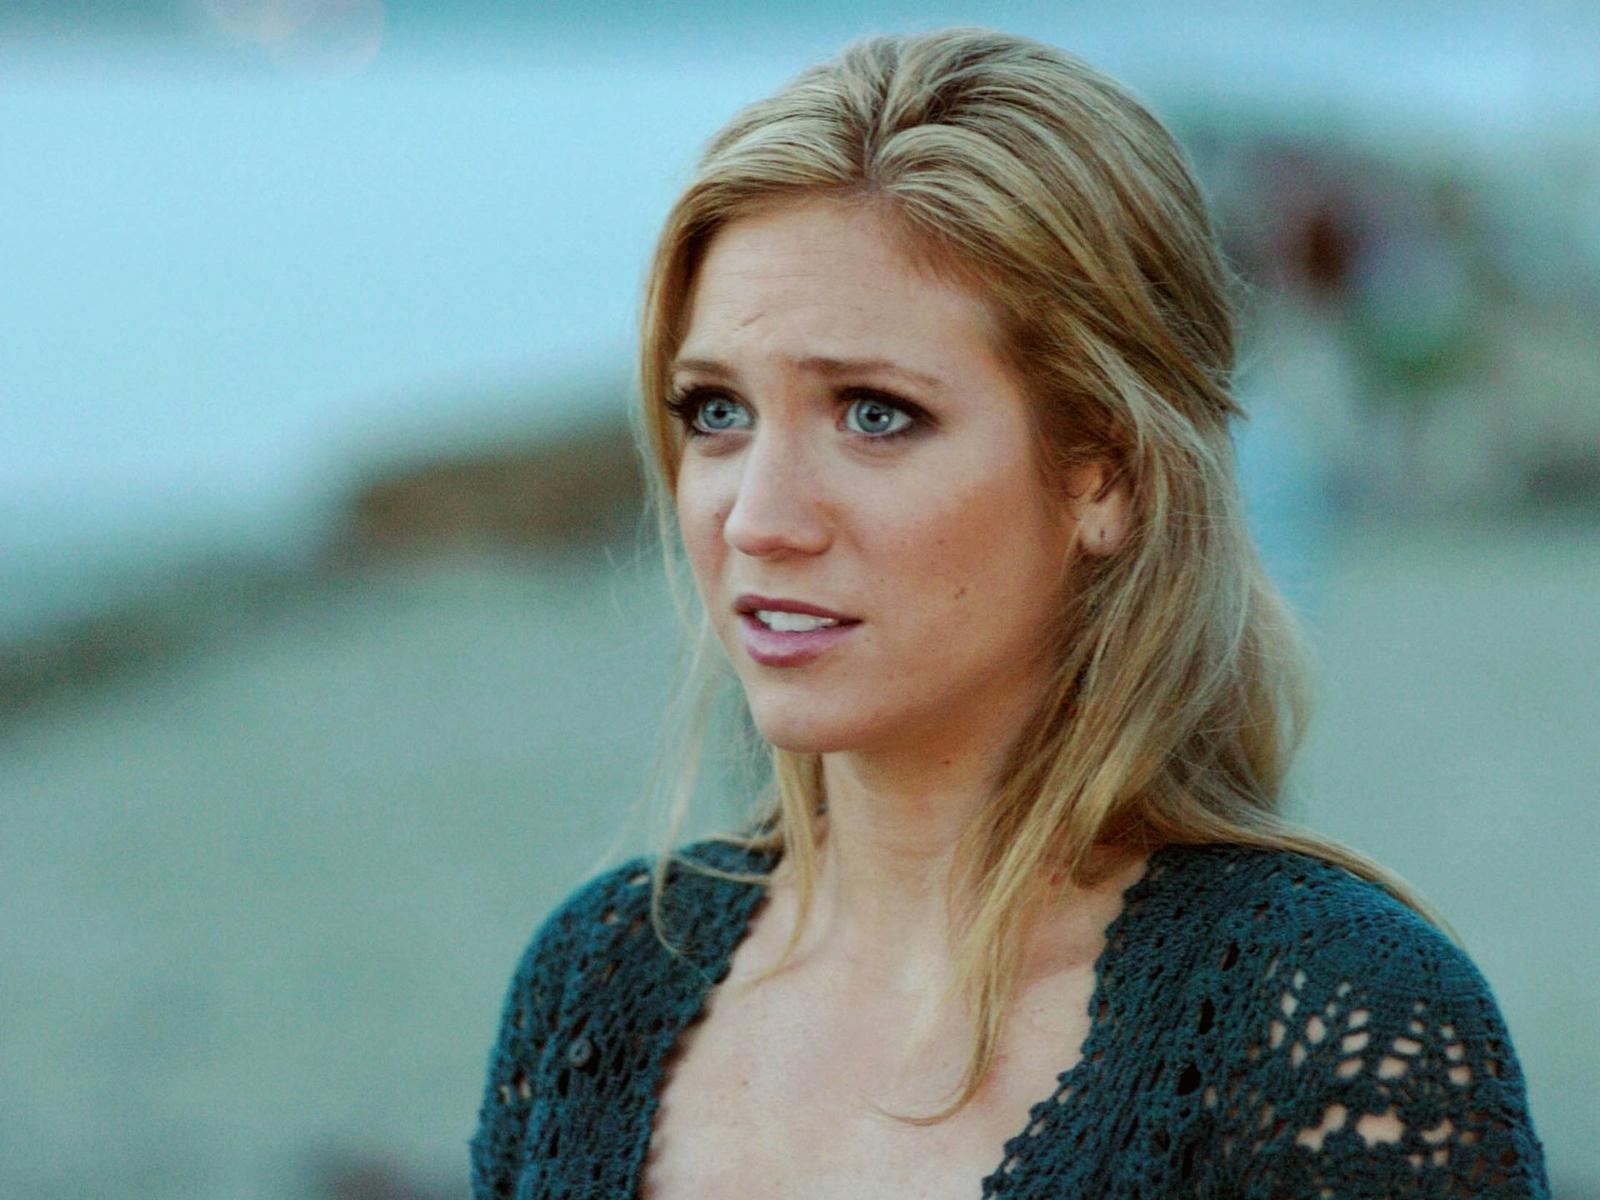 Brittany Snow - Wallpaper Actress